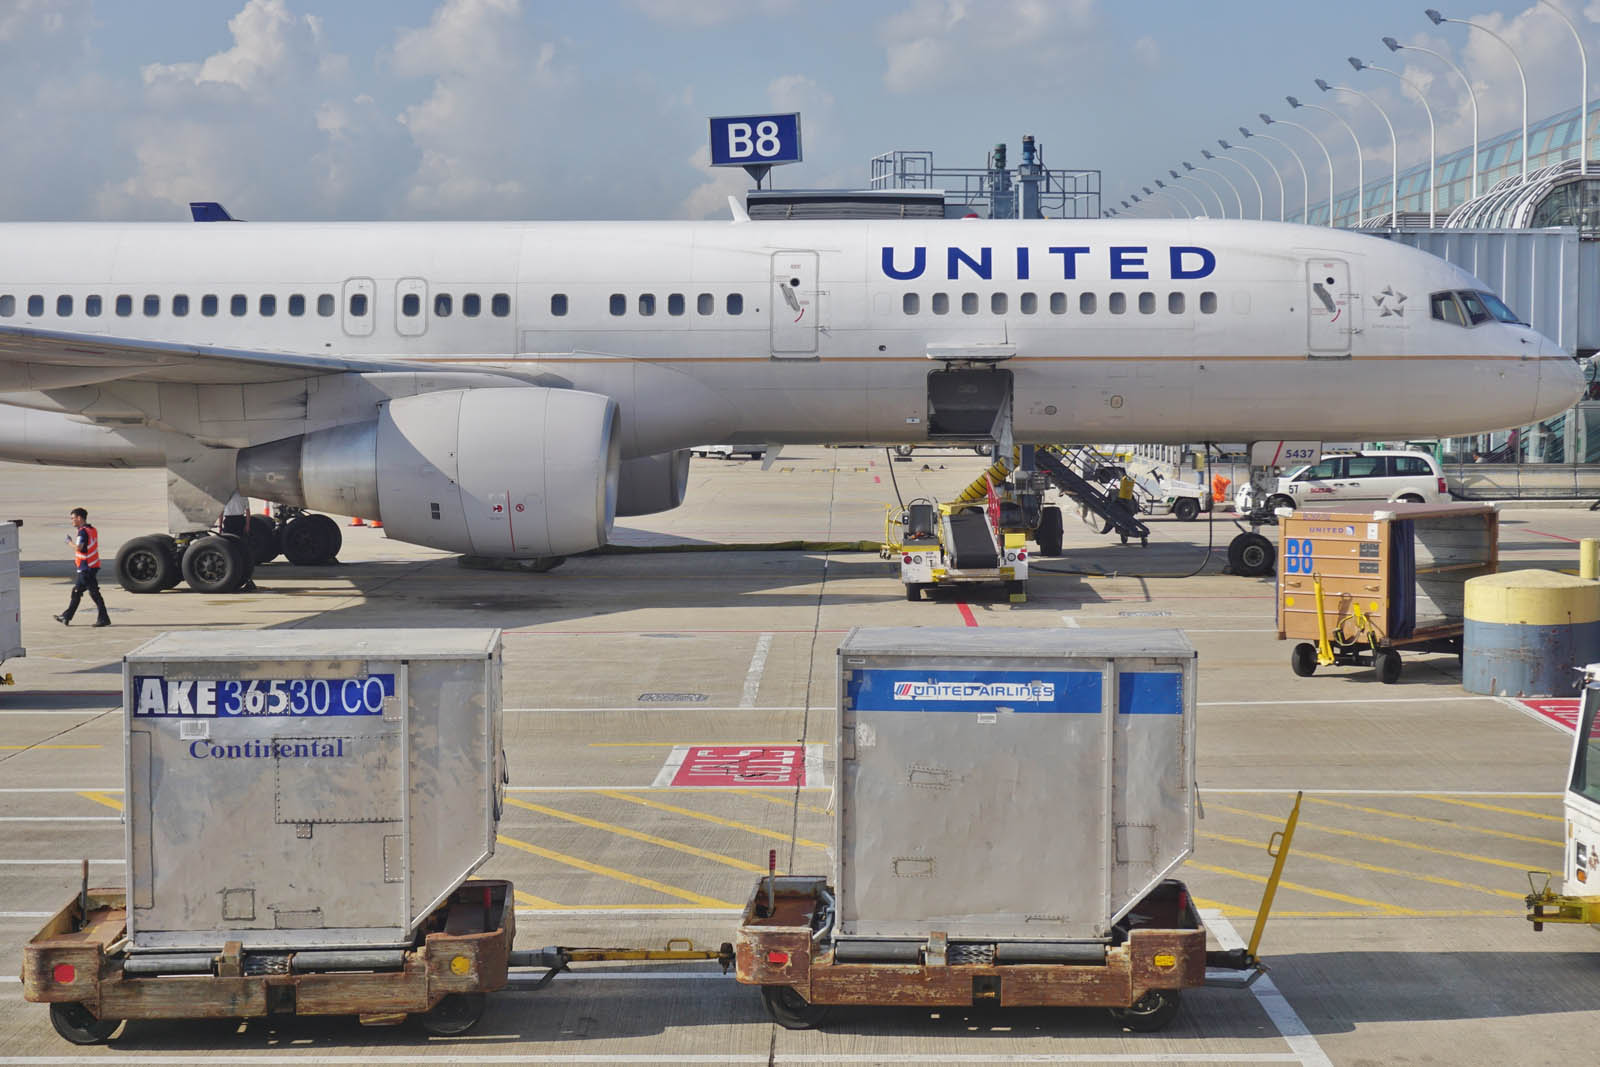 A United Airlines plane sits on the tarmac with baggage containers in the foreground